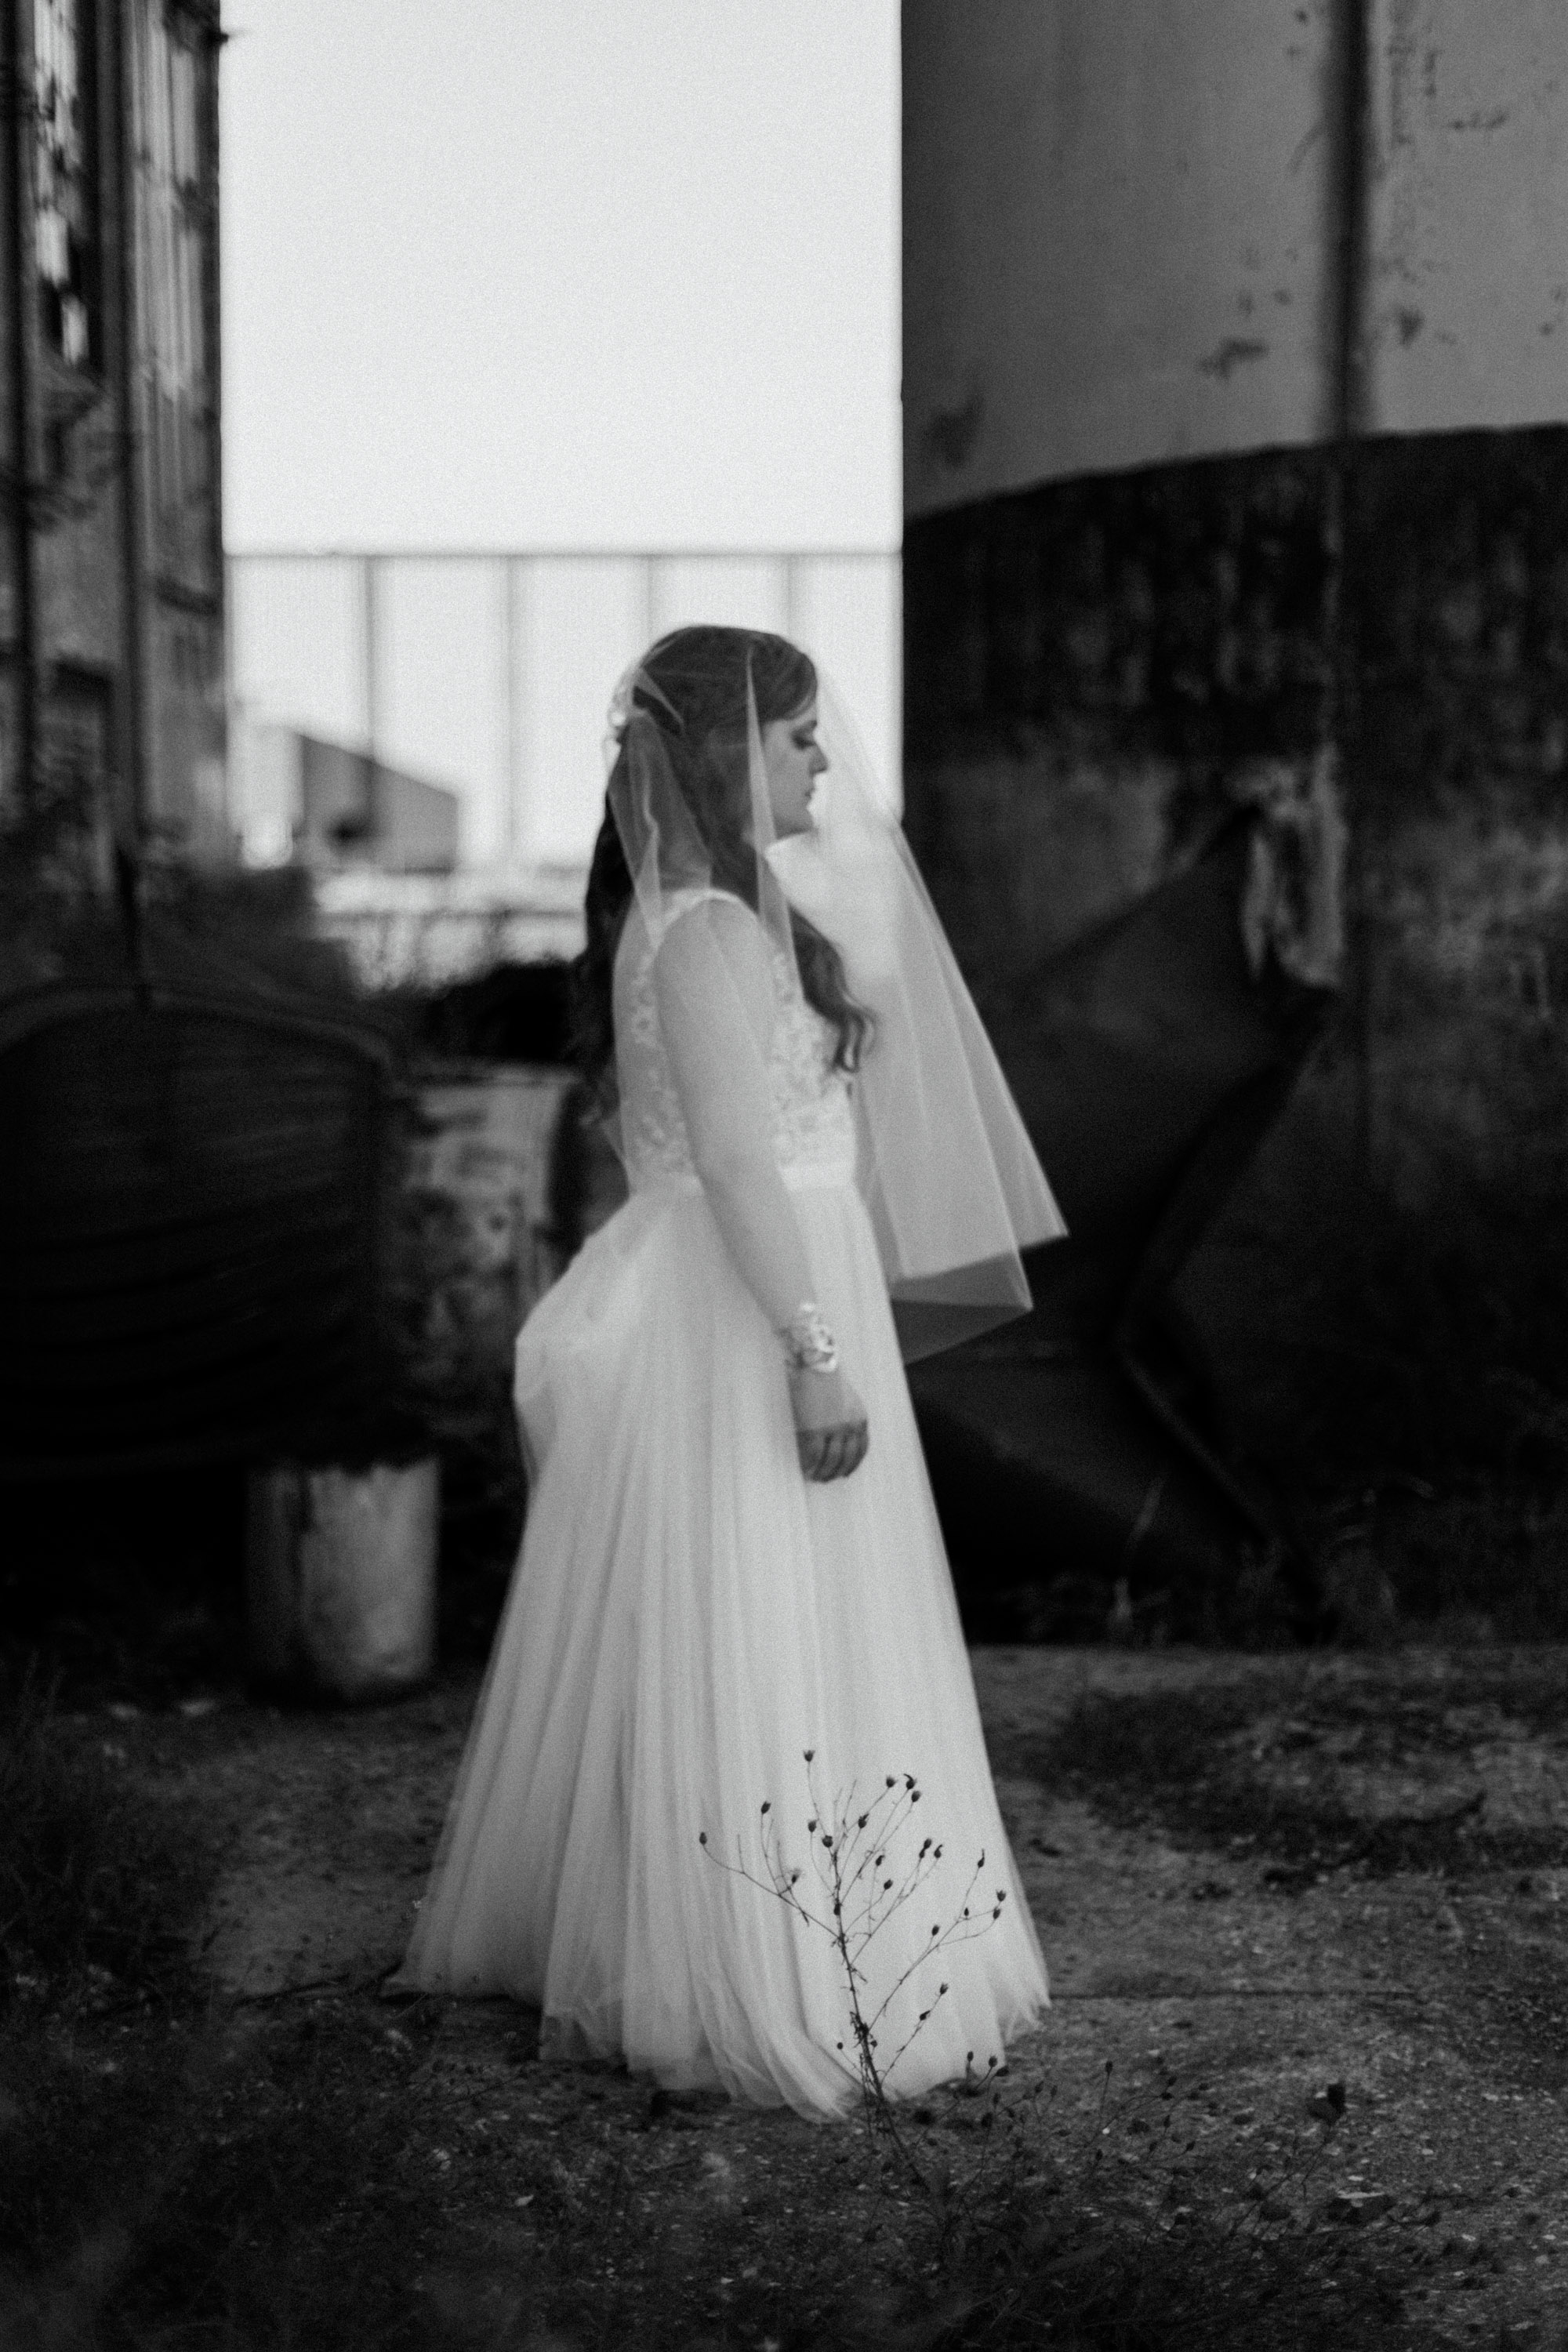 Unconventional bridal portrait. Wedding photography by Britt DeZeeuw at the NP Event Space.